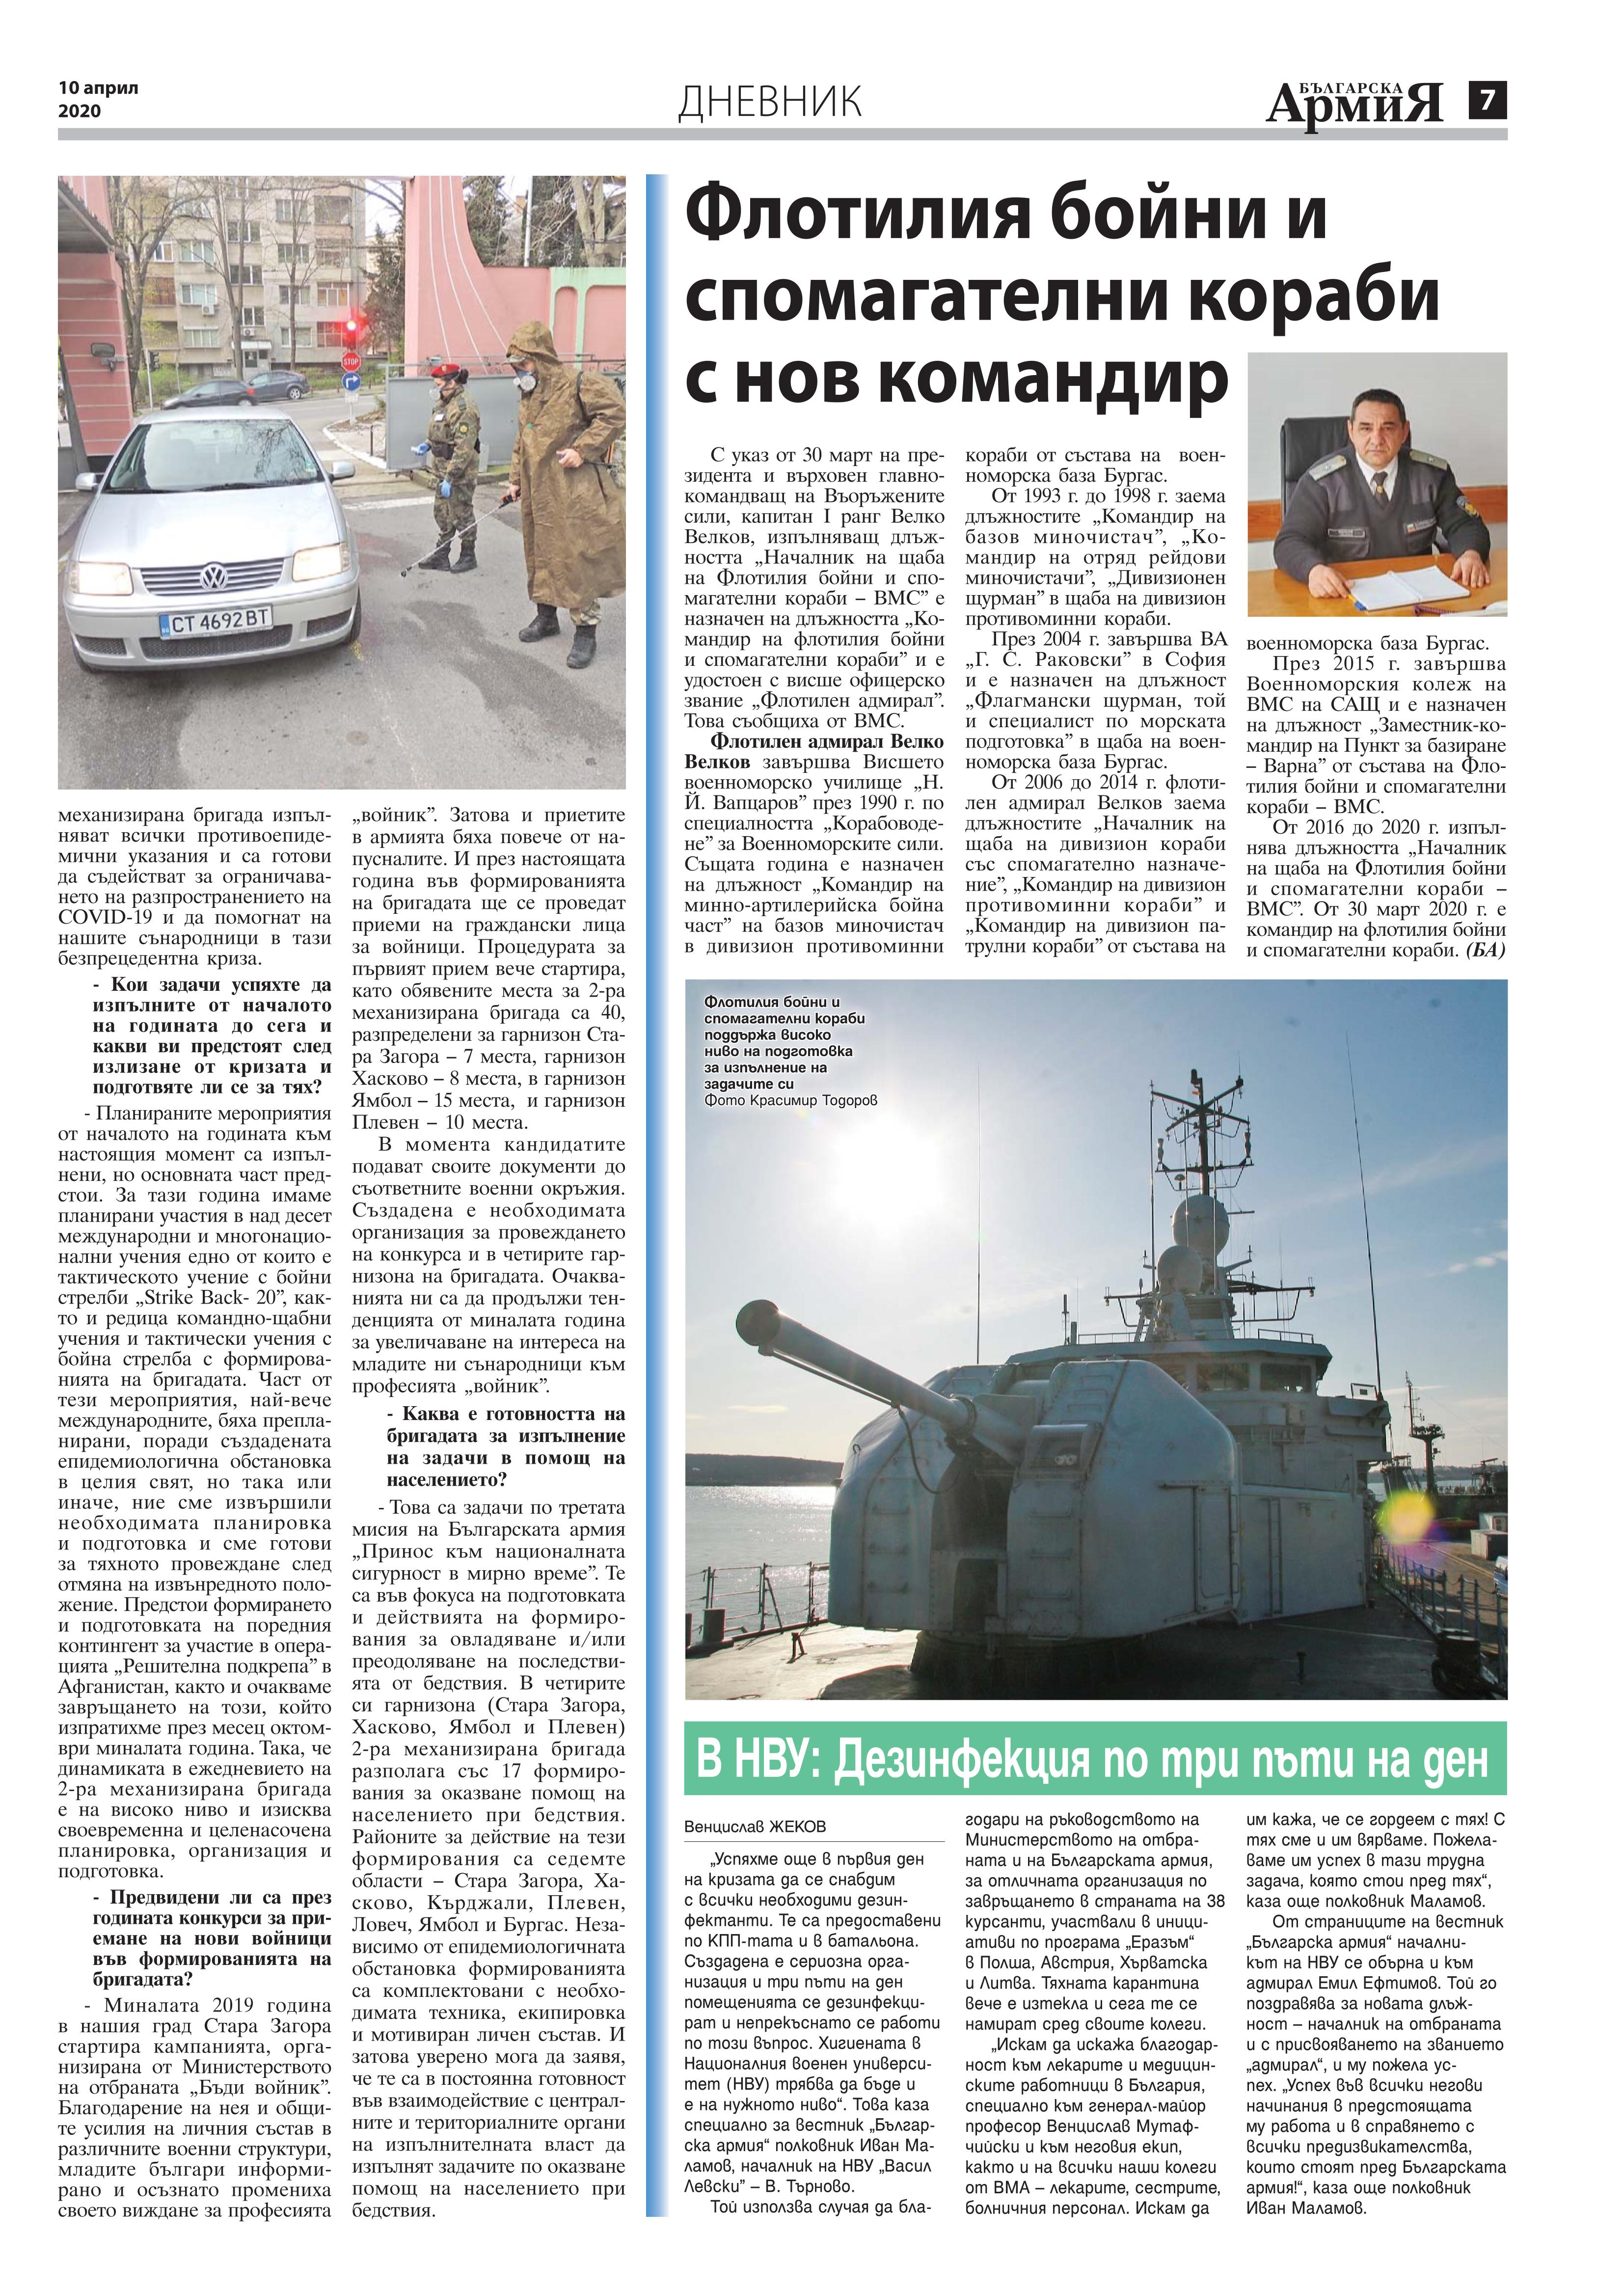 https://armymedia.bg/wp-content/uploads/2015/06/07.page1_-131.jpg